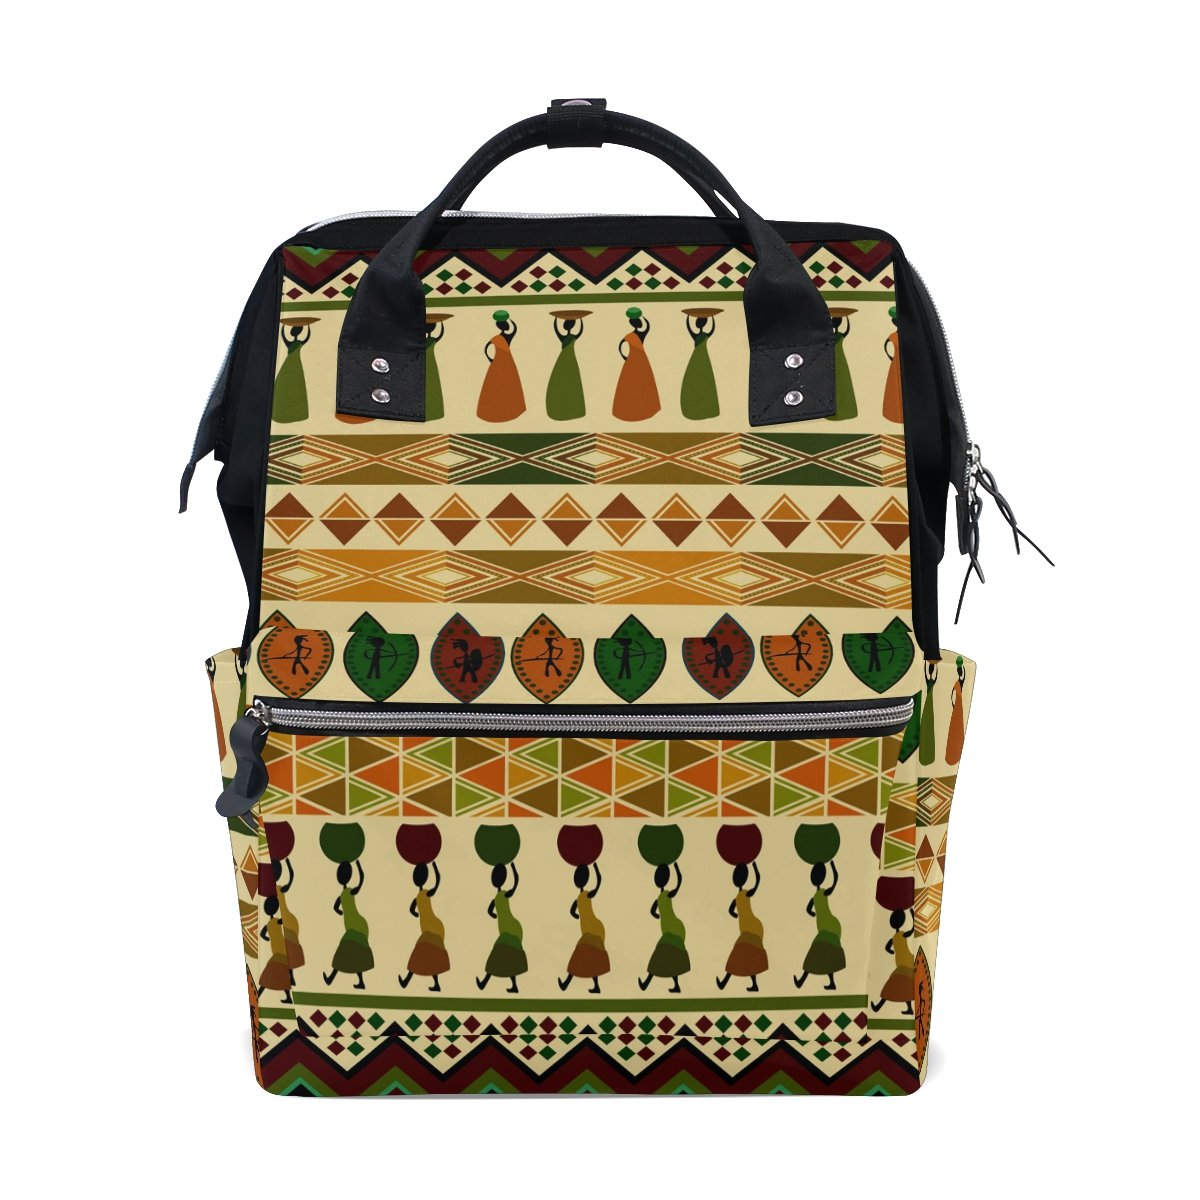 Diaper Bags Backpack Purse Mummy Backpack Fashion Mummy Maternity Nappy Bag Cool Cute Travel Backpack Laptop Backpack with African Style Fashion Illustration Daypack for Women Girls Kids